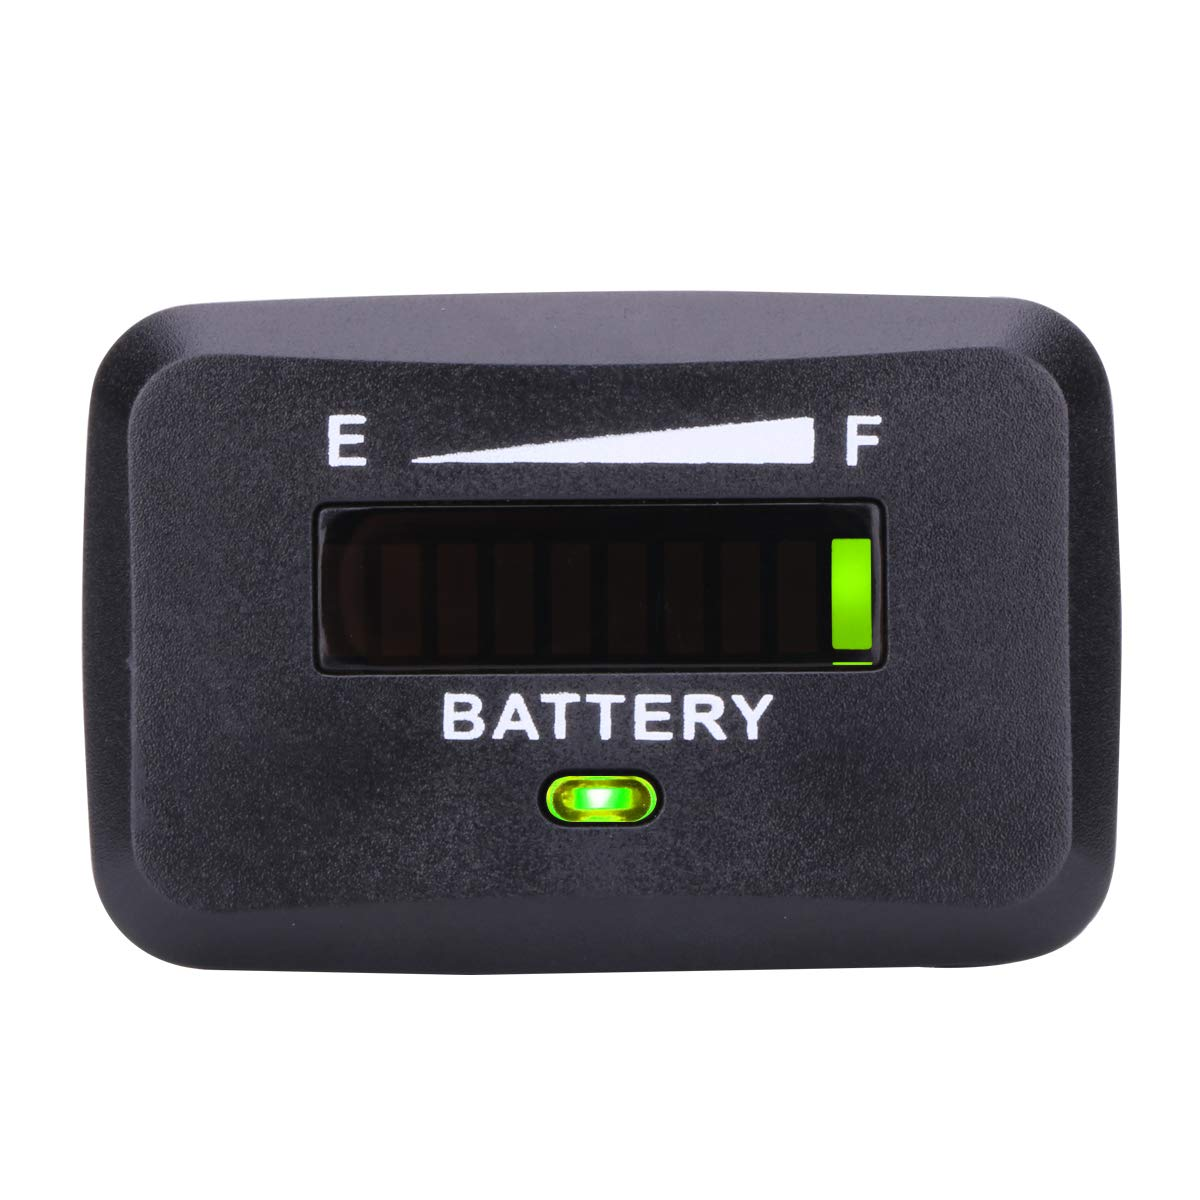 AIMILAR Golf Cart Battery Indicator Tester Battery Charge Discharge Status Gauge Meter for Lead-Acid Battery Club Car (12/24V)